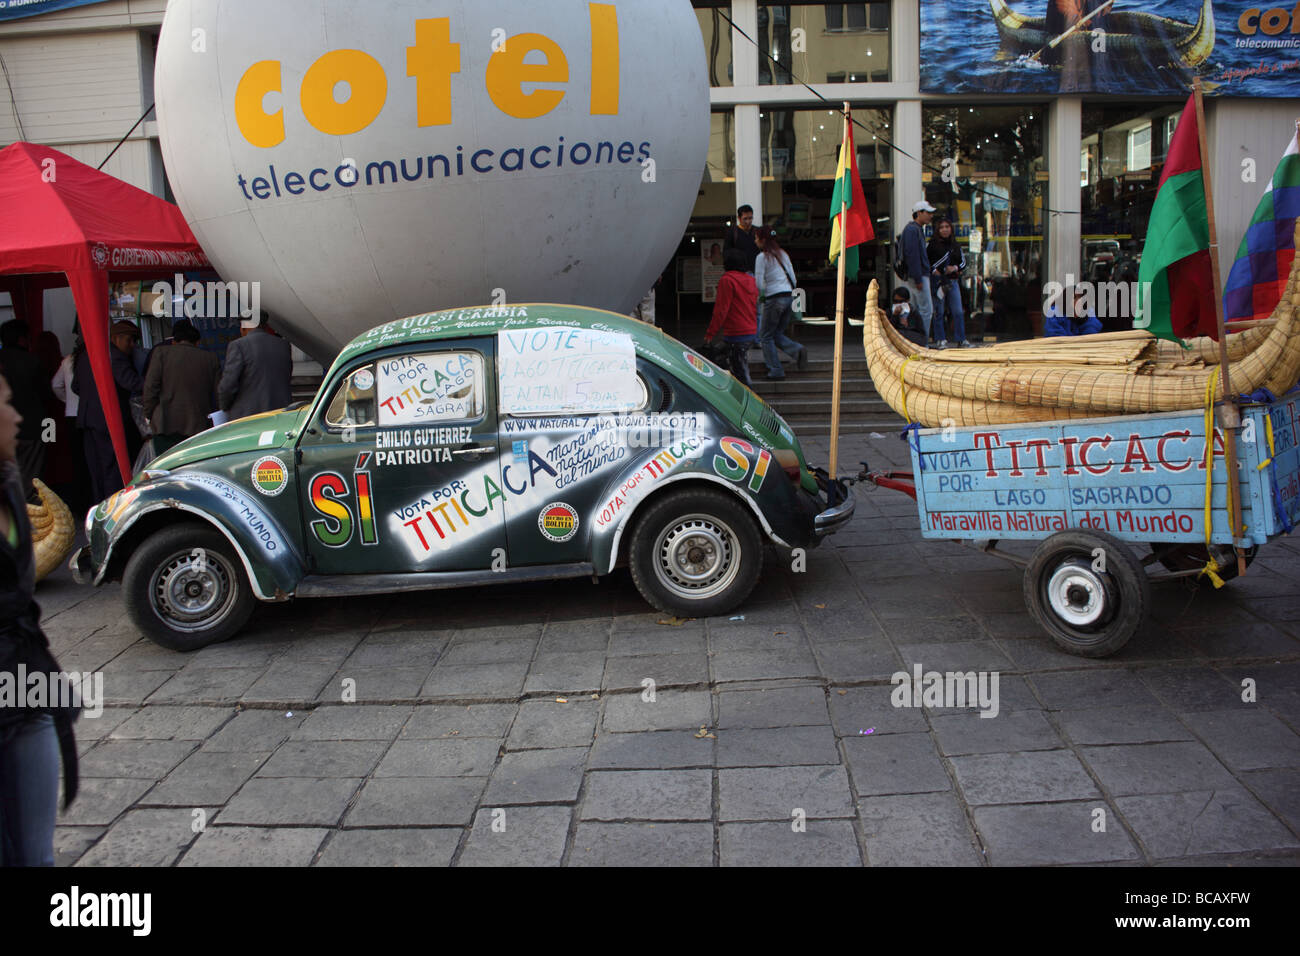 Painted Volkswagen Beetle, part of campaign for Lake Titicaca as one of The Seven Natural Wonders of the World, - Stock Image